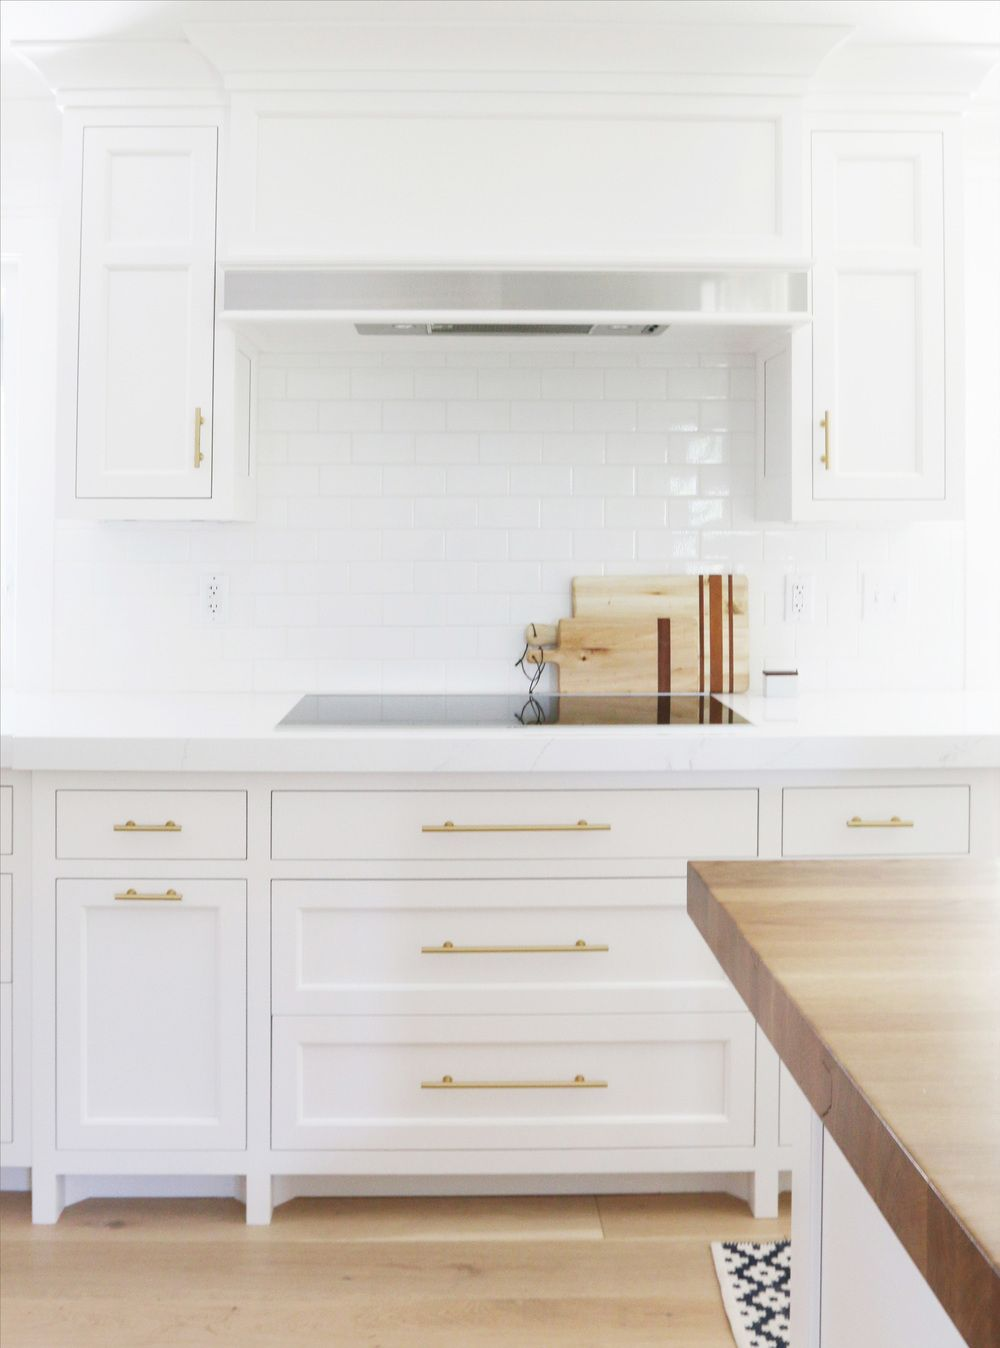 brass kitchen hardware black faucets before and after robin road remodel in 2019 kitchens cabinet details studio mcgee